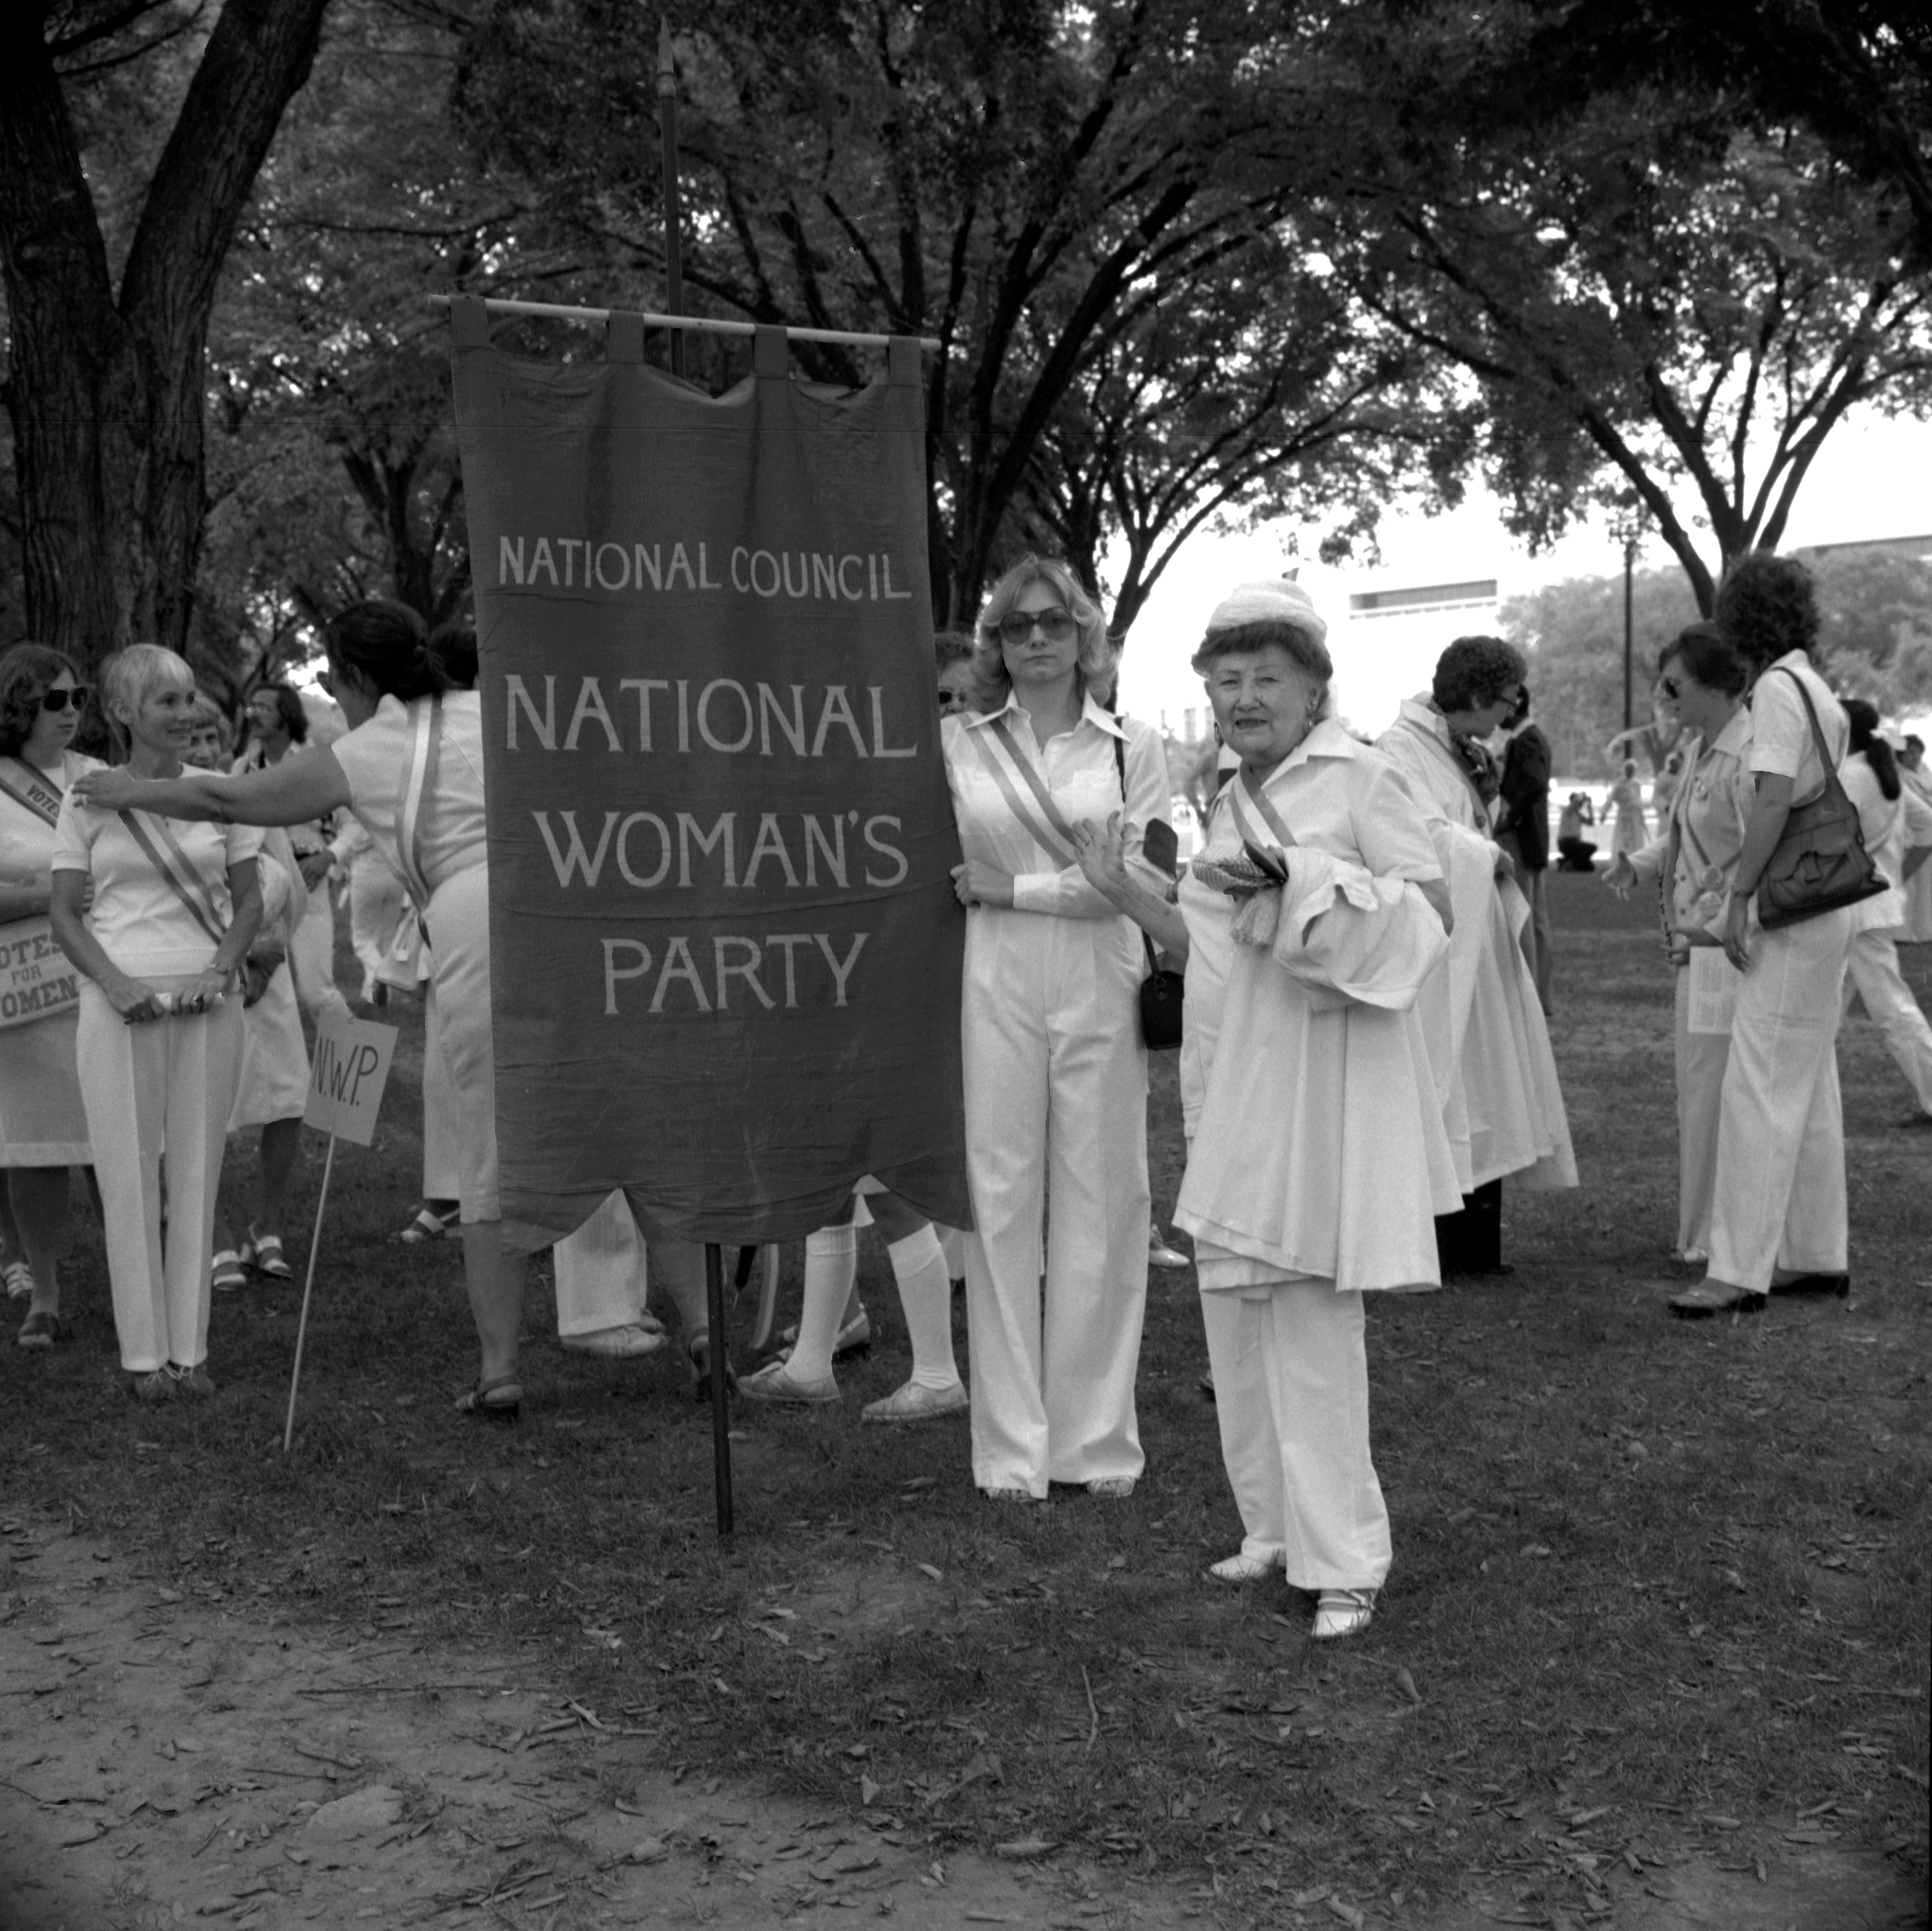 Alice Paul Memorial March in Washington, D.C.